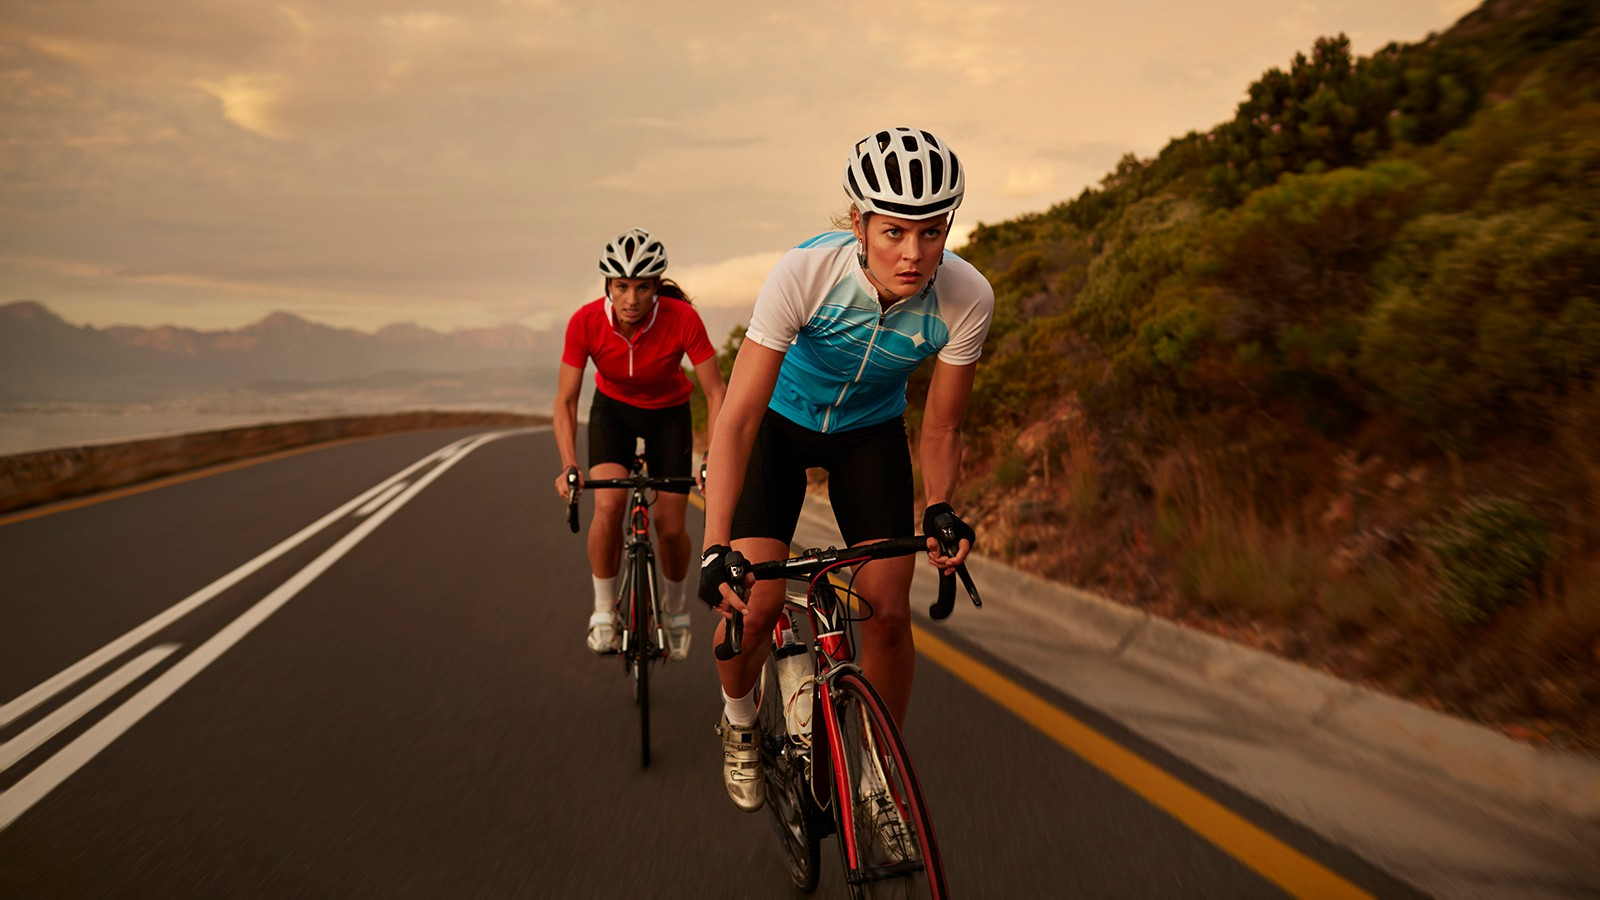 Endurance sports, such as cycling, require the body to produce energy for a long period of time